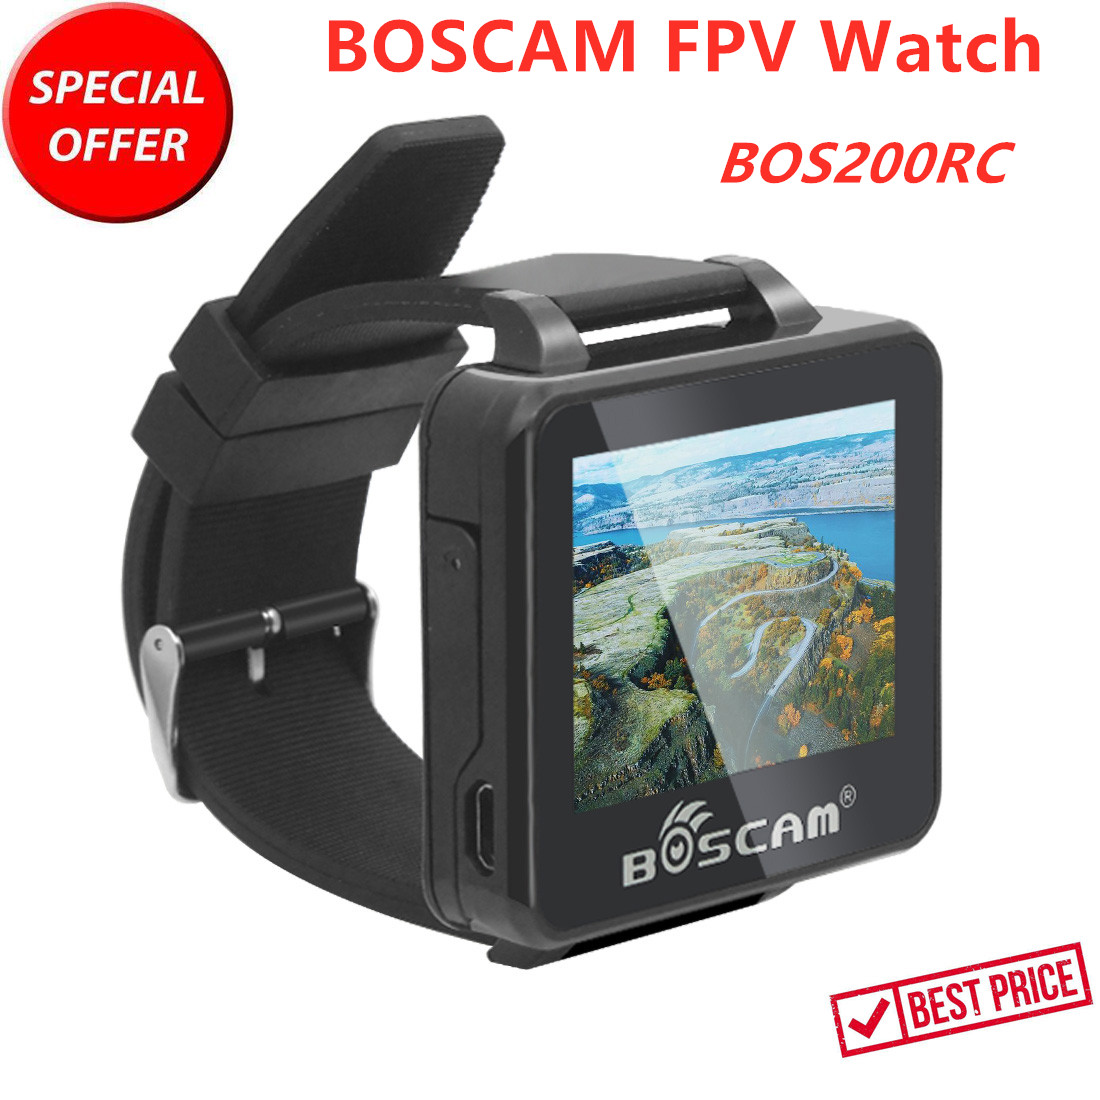 BOSCAM BOS200RC FPV Watch 200RC 5.8GHz 40CH HD 960*240 2 inch TFT Monitor Wireless AV Receiver for FPV RC Camera Heli QuadcopterBOSCAM BOS200RC FPV Watch 200RC 5.8GHz 40CH HD 960*240 2 inch TFT Monitor Wireless AV Receiver for FPV RC Camera Heli Quadcopter